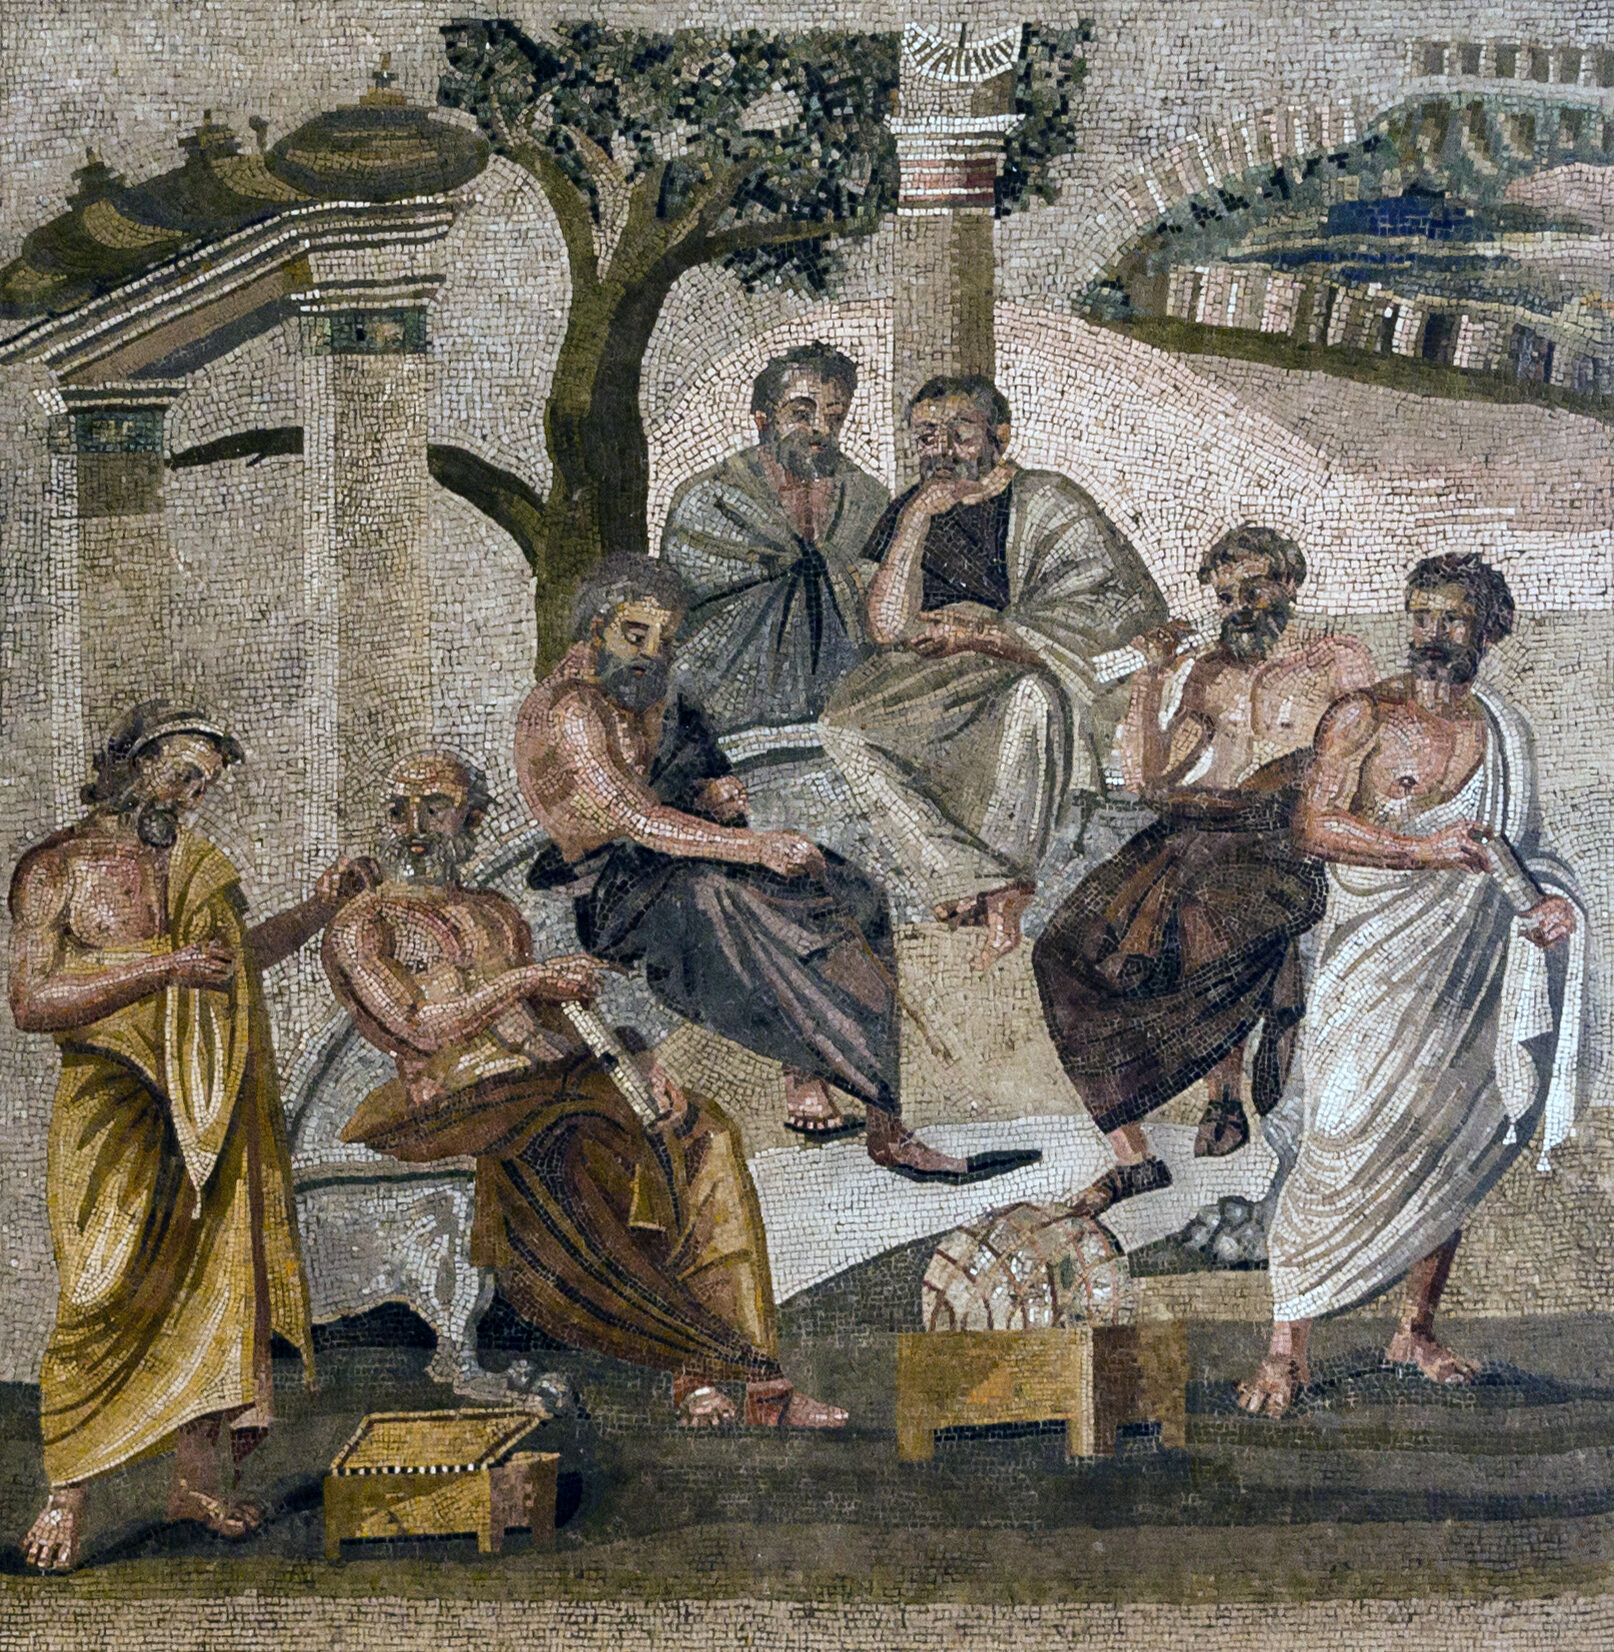 A review of the life and works of plato in ancient greece